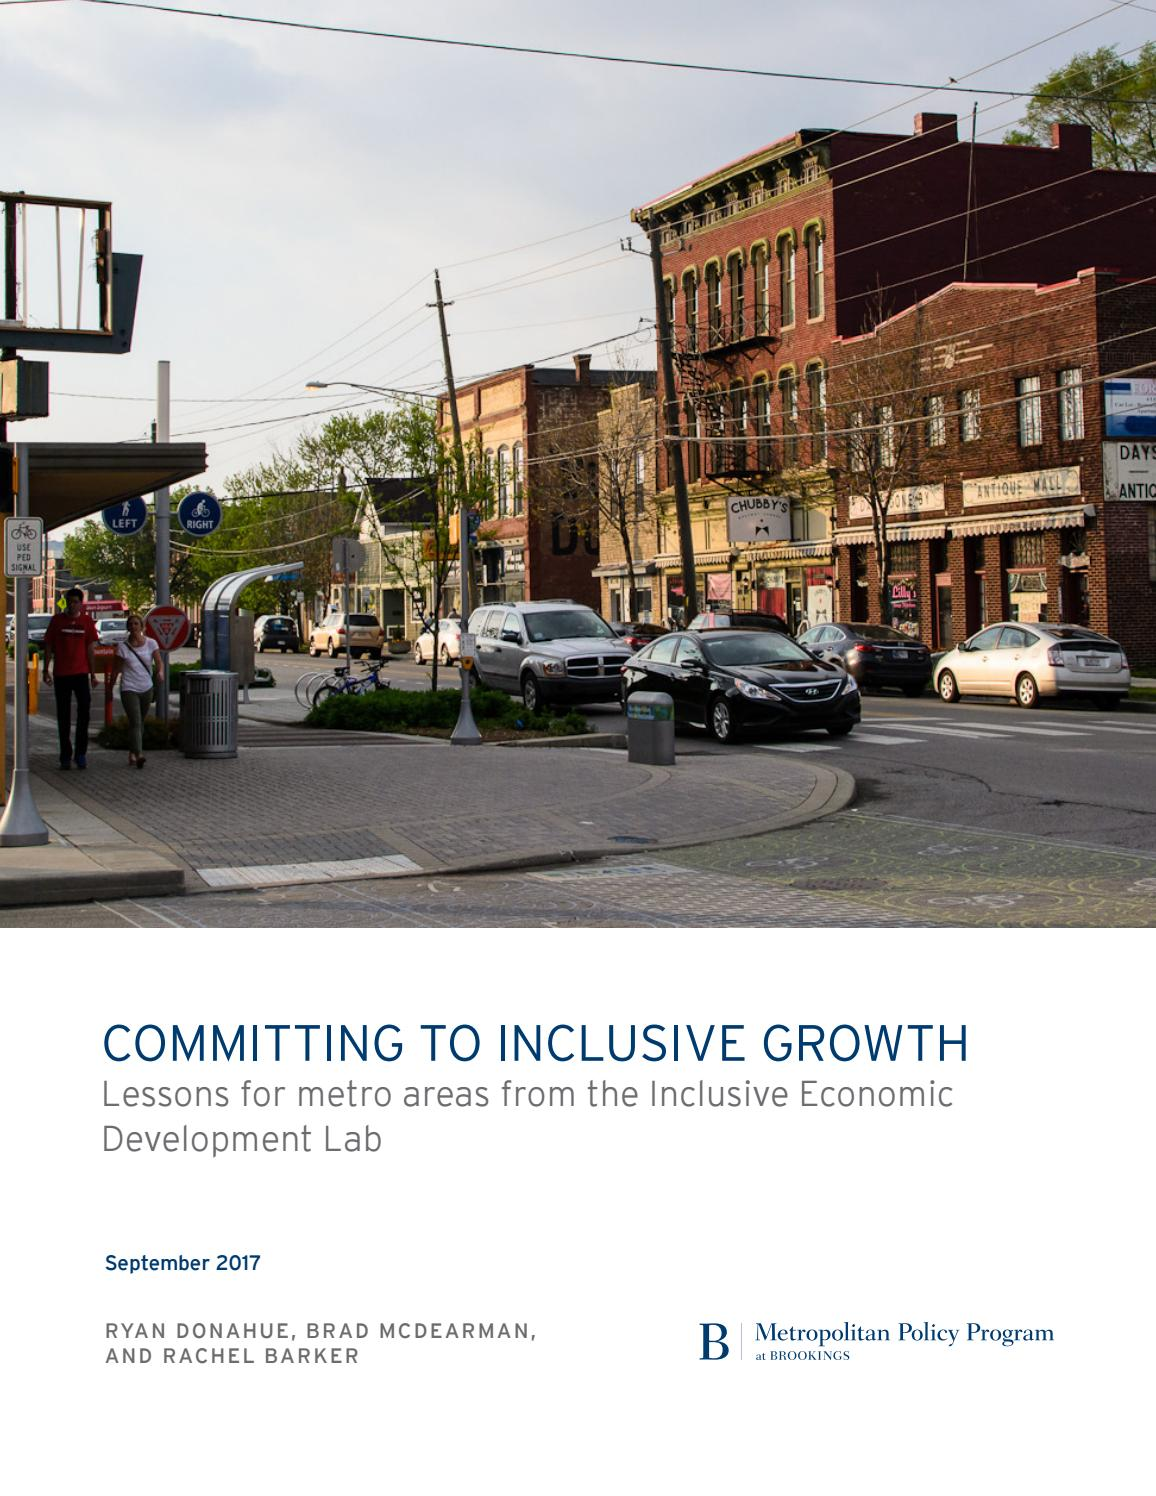 Committing to inclusive growth lessons for metro areas from the